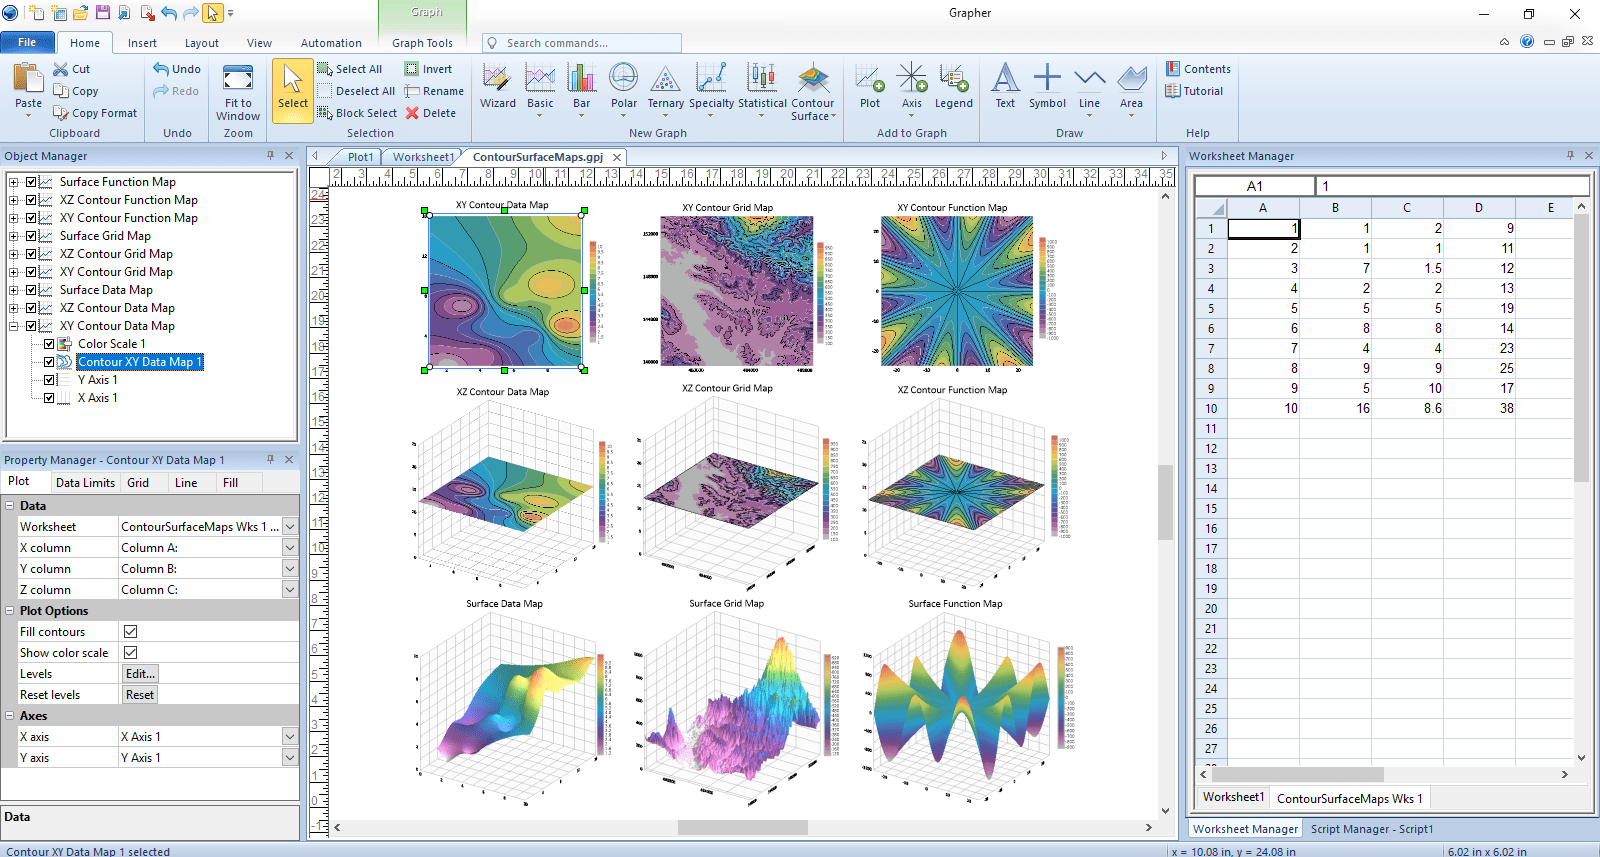 New Features In Grapher 13